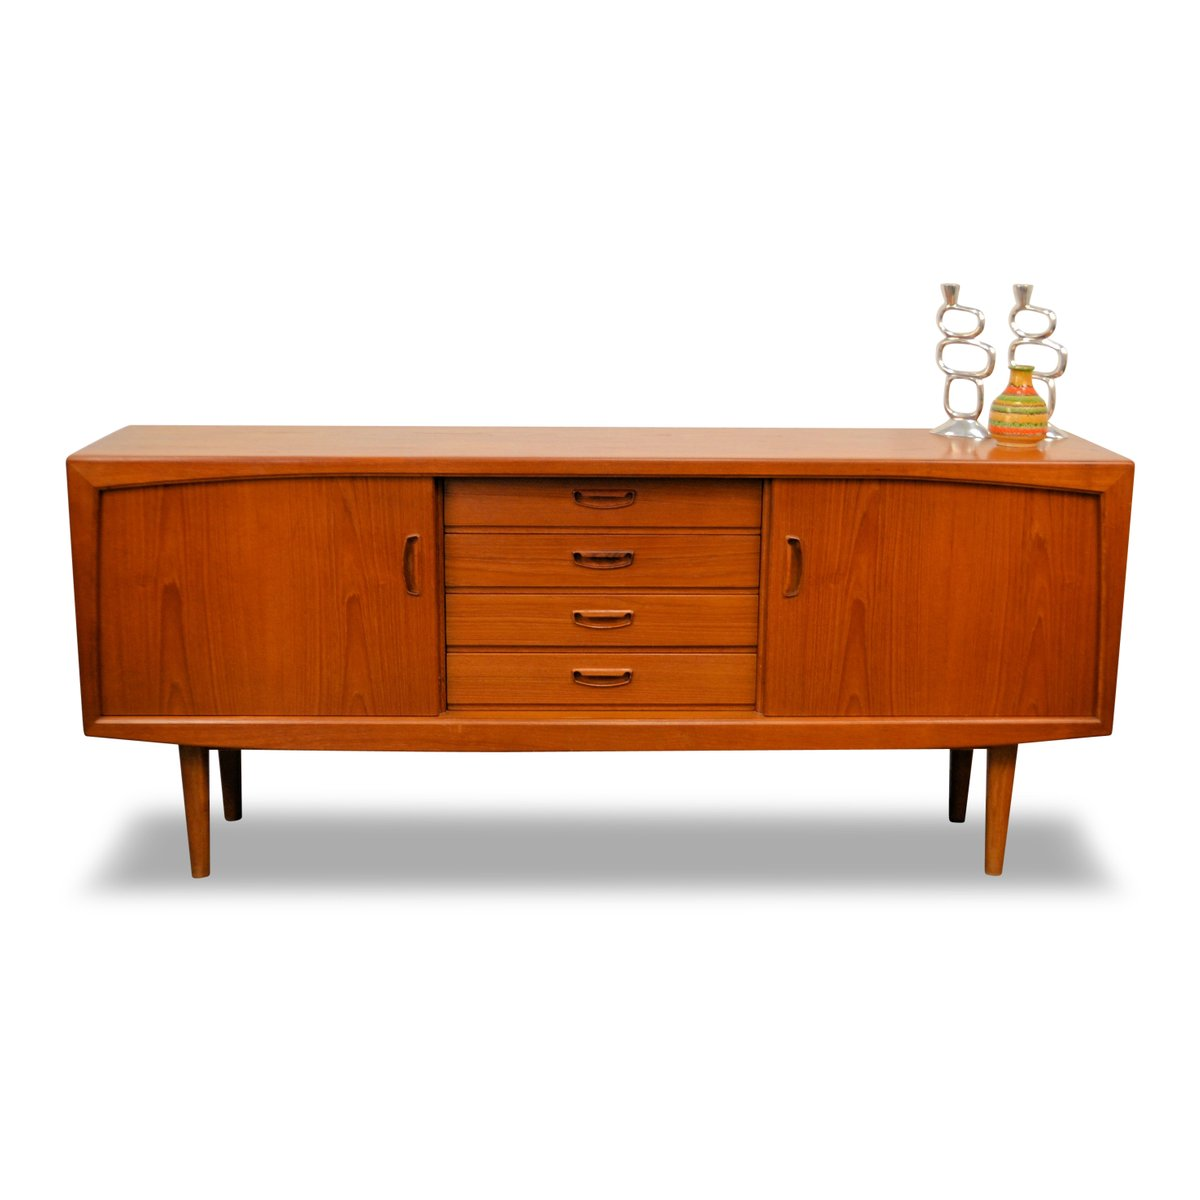 mid century danish teak sideboard with sliding doors. Black Bedroom Furniture Sets. Home Design Ideas